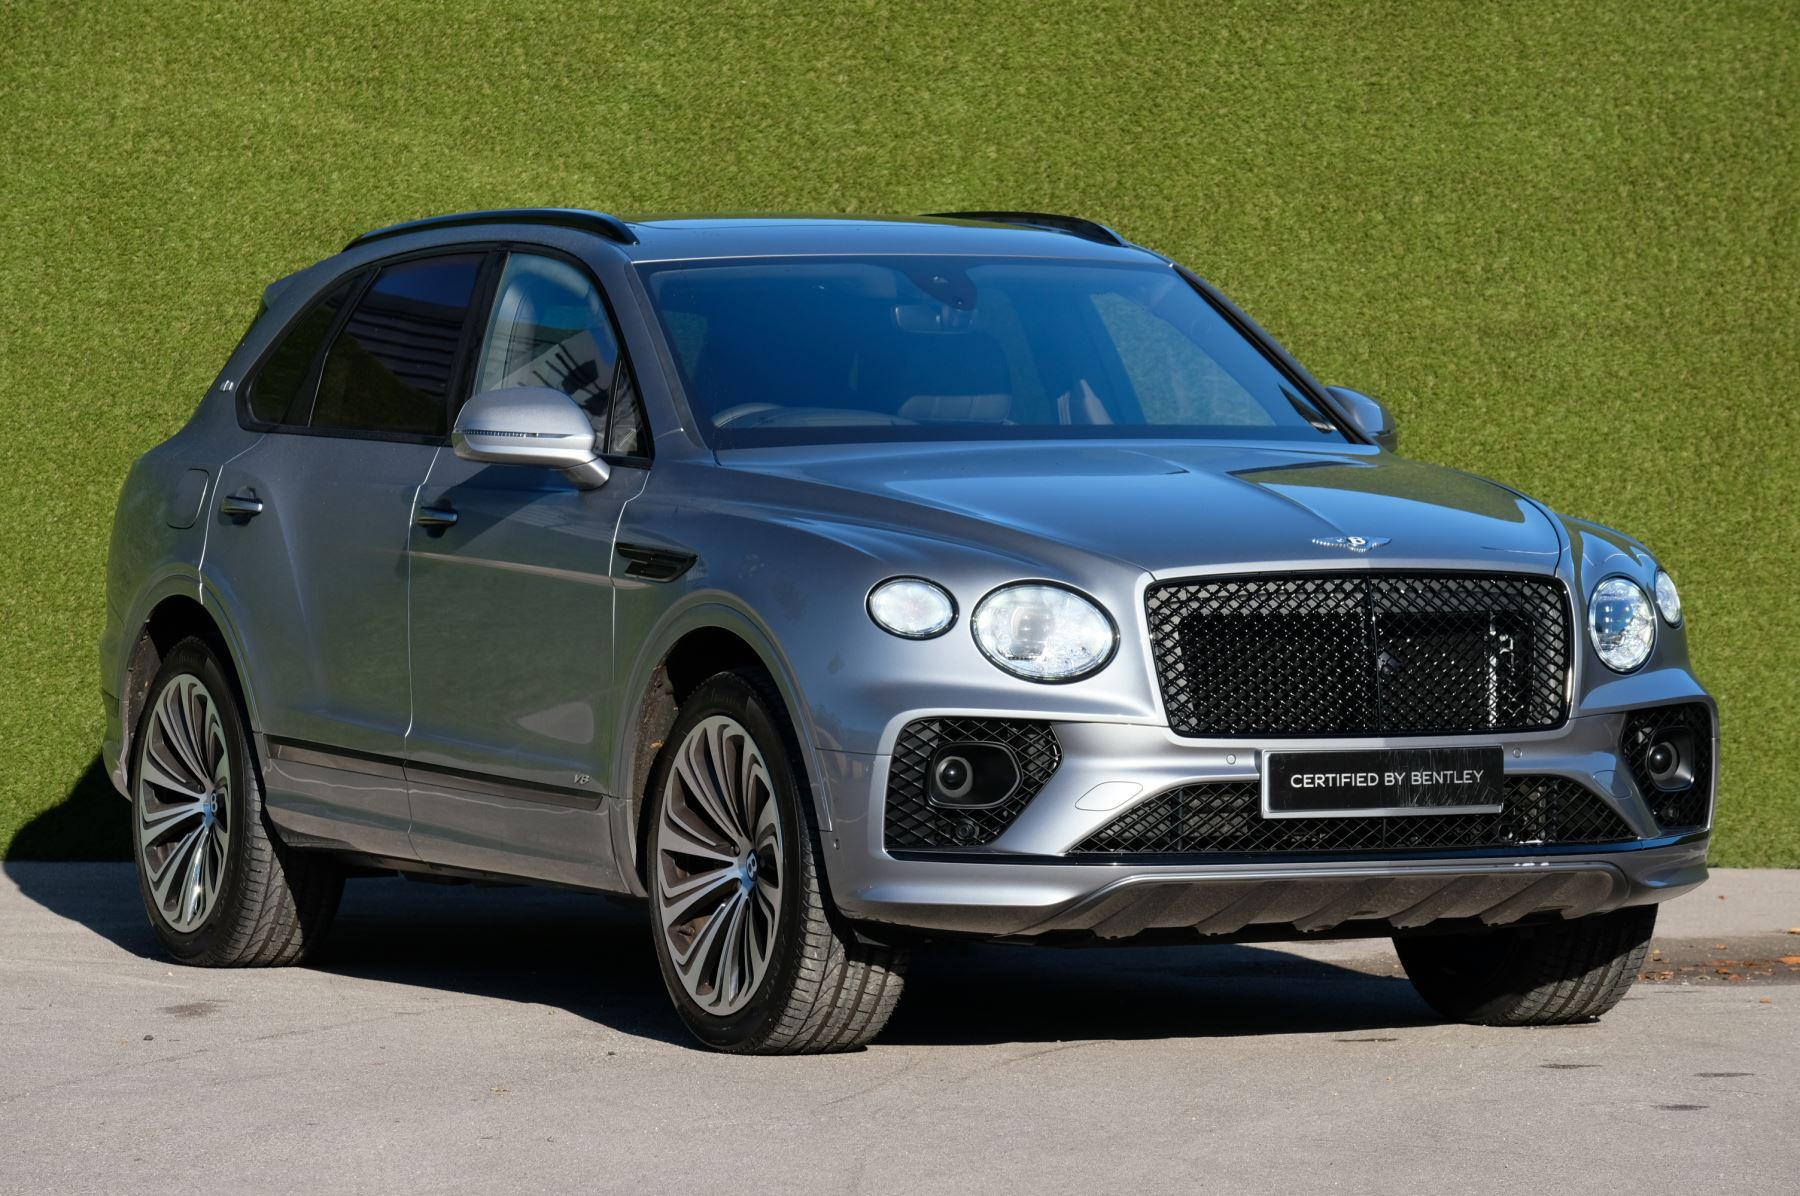 Bentley Bentayga 4.0 V8 First Edition 5dr Auto - Mulliner Driving Specification Automatic Estate (2020)